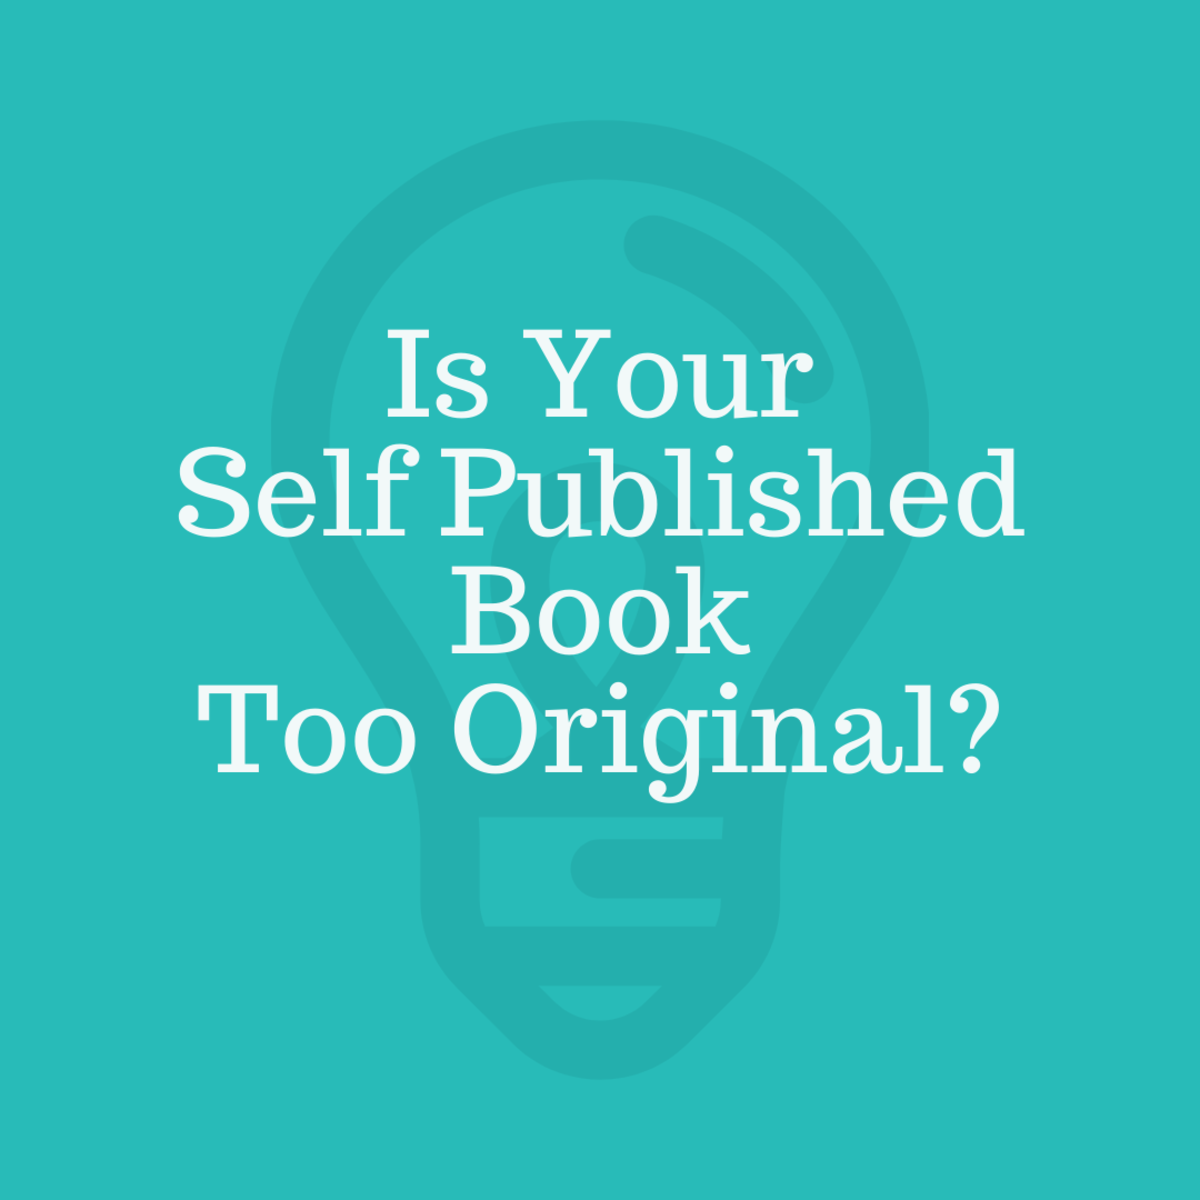 Is Your Self Published Book Too Original?